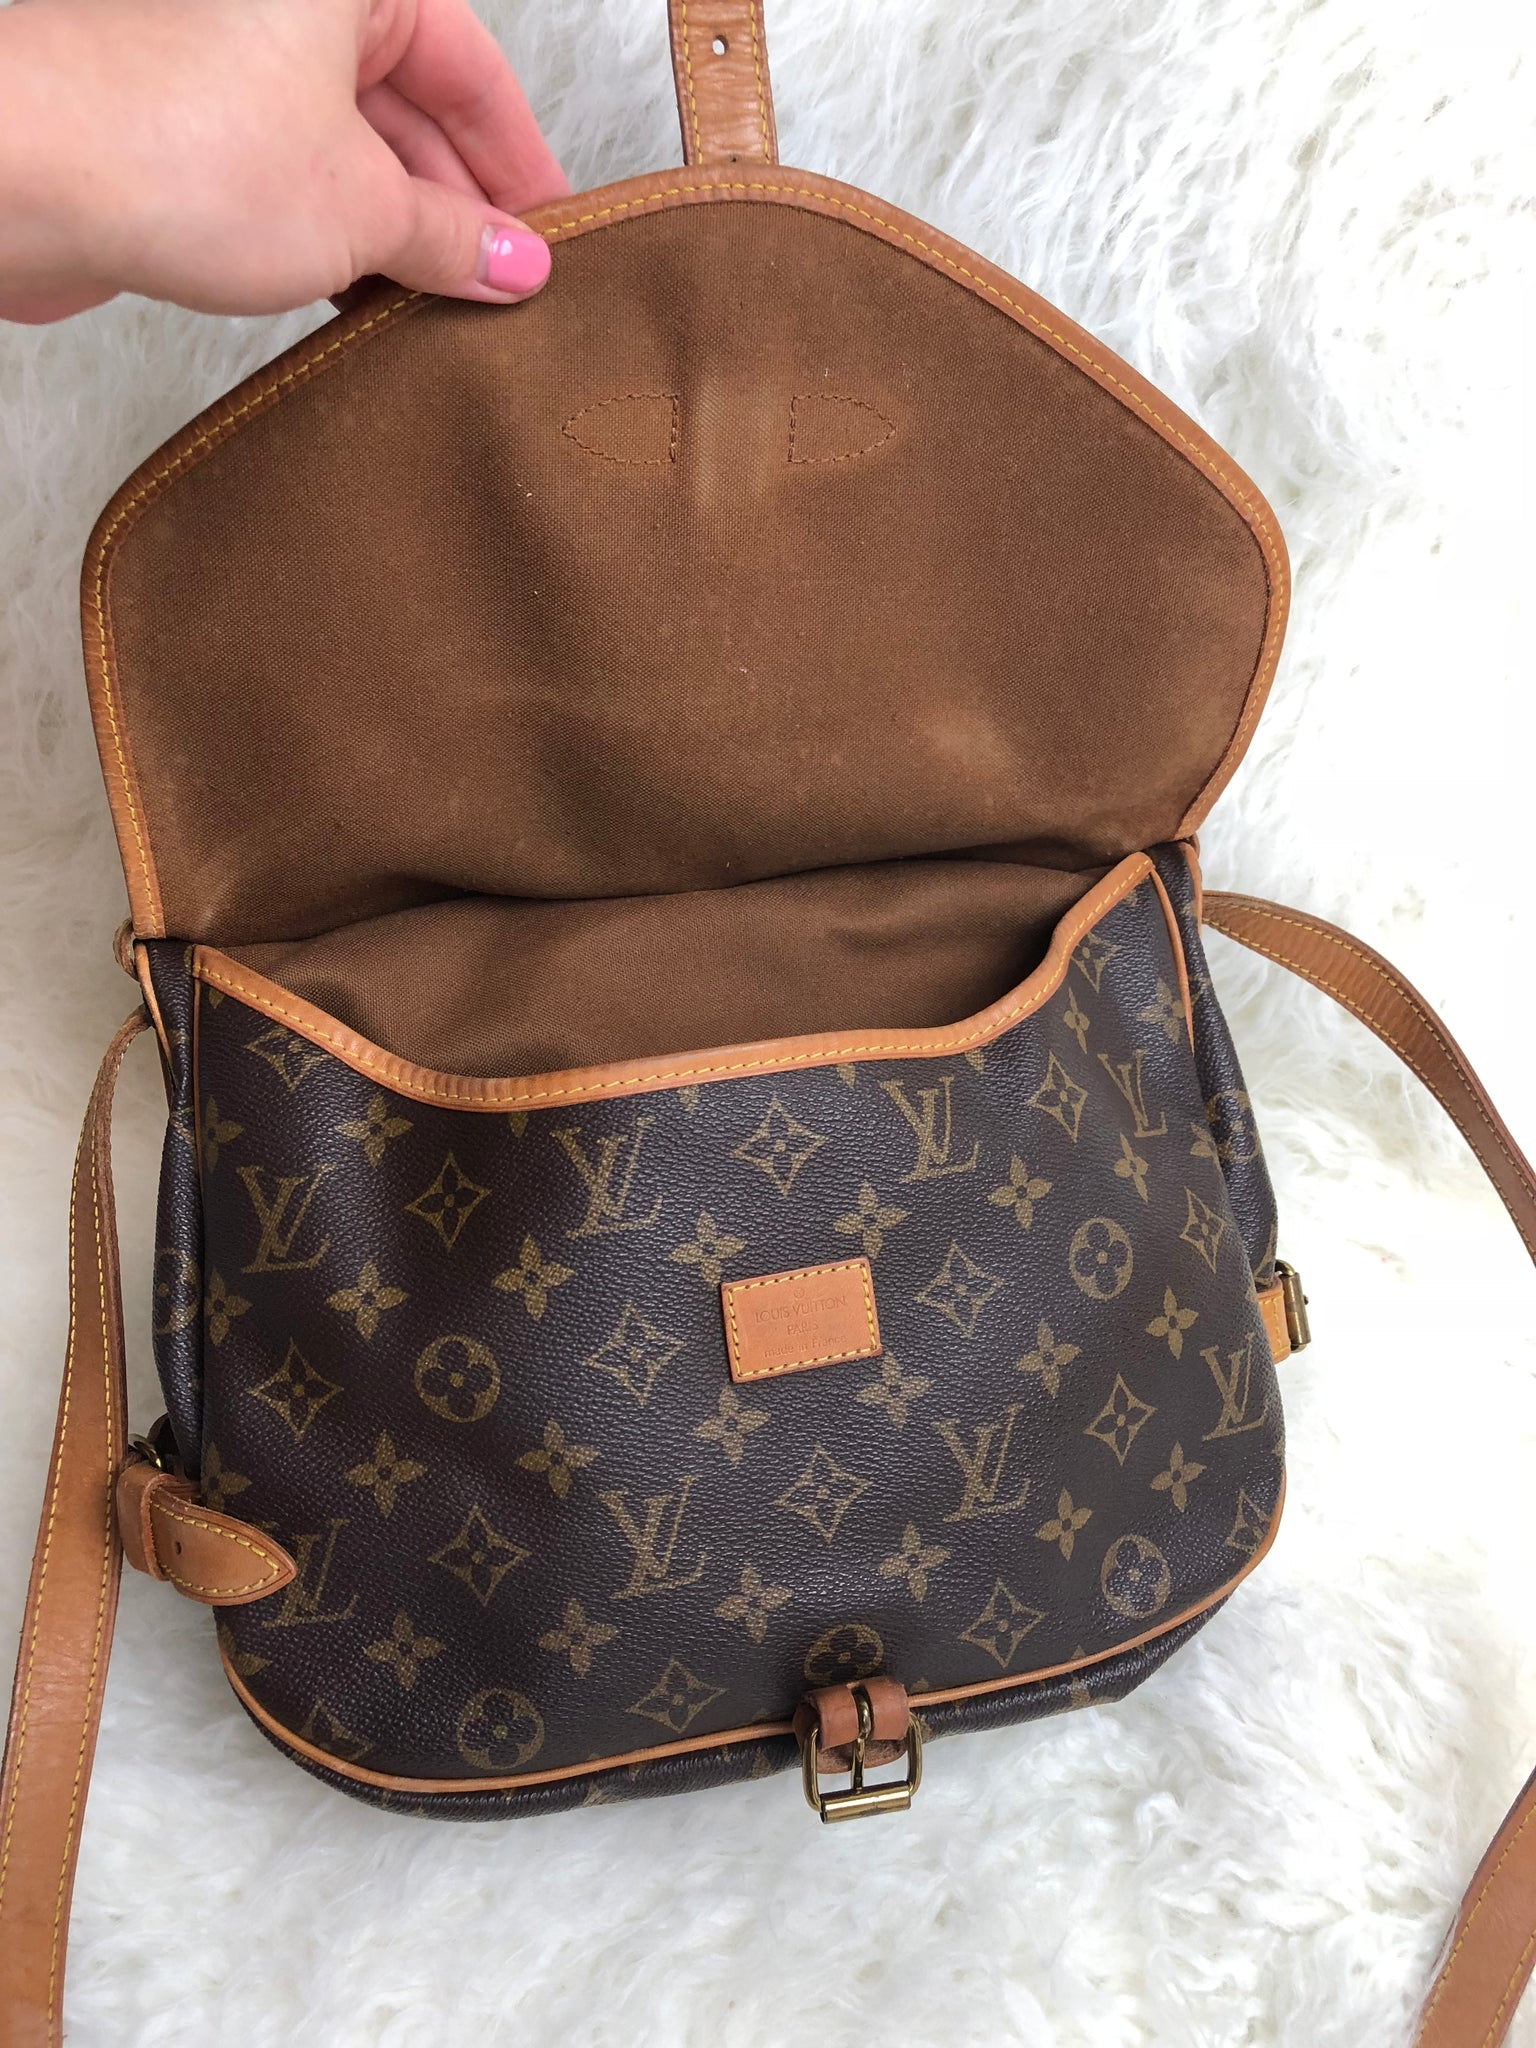 LOUIS VUITTON Saumur 30 Crossbody Bag (AR0971)